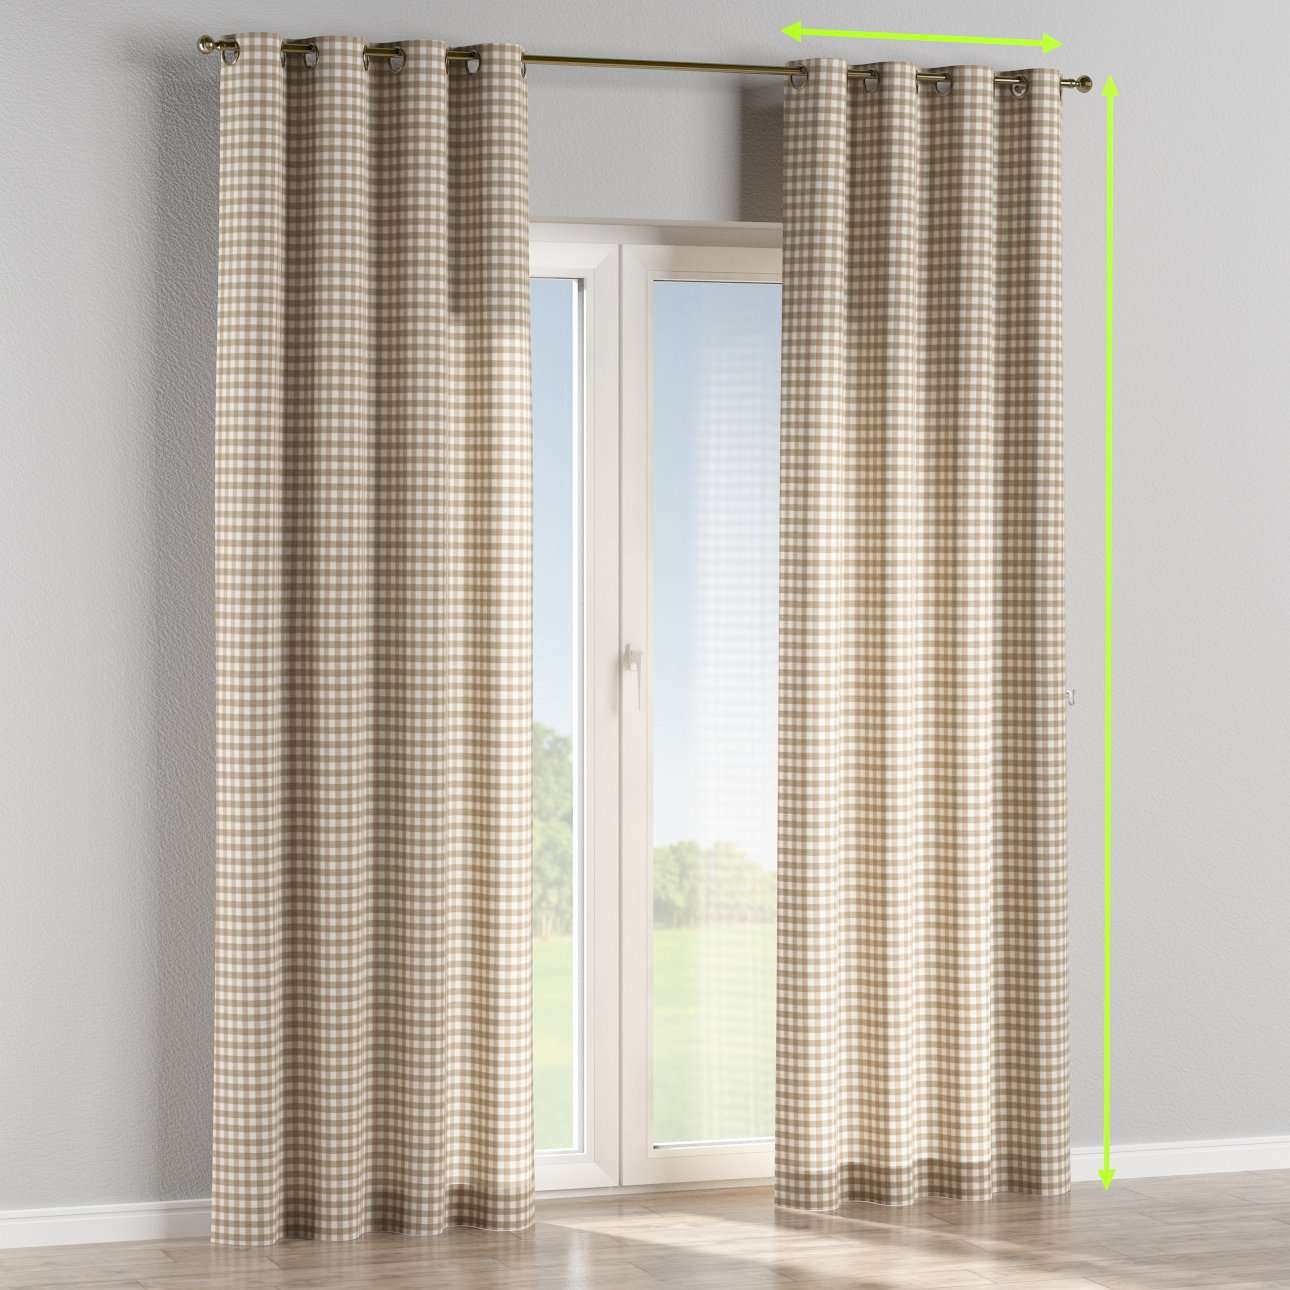 Eyelet lined curtains in collection Quadro, fabric: 136-06